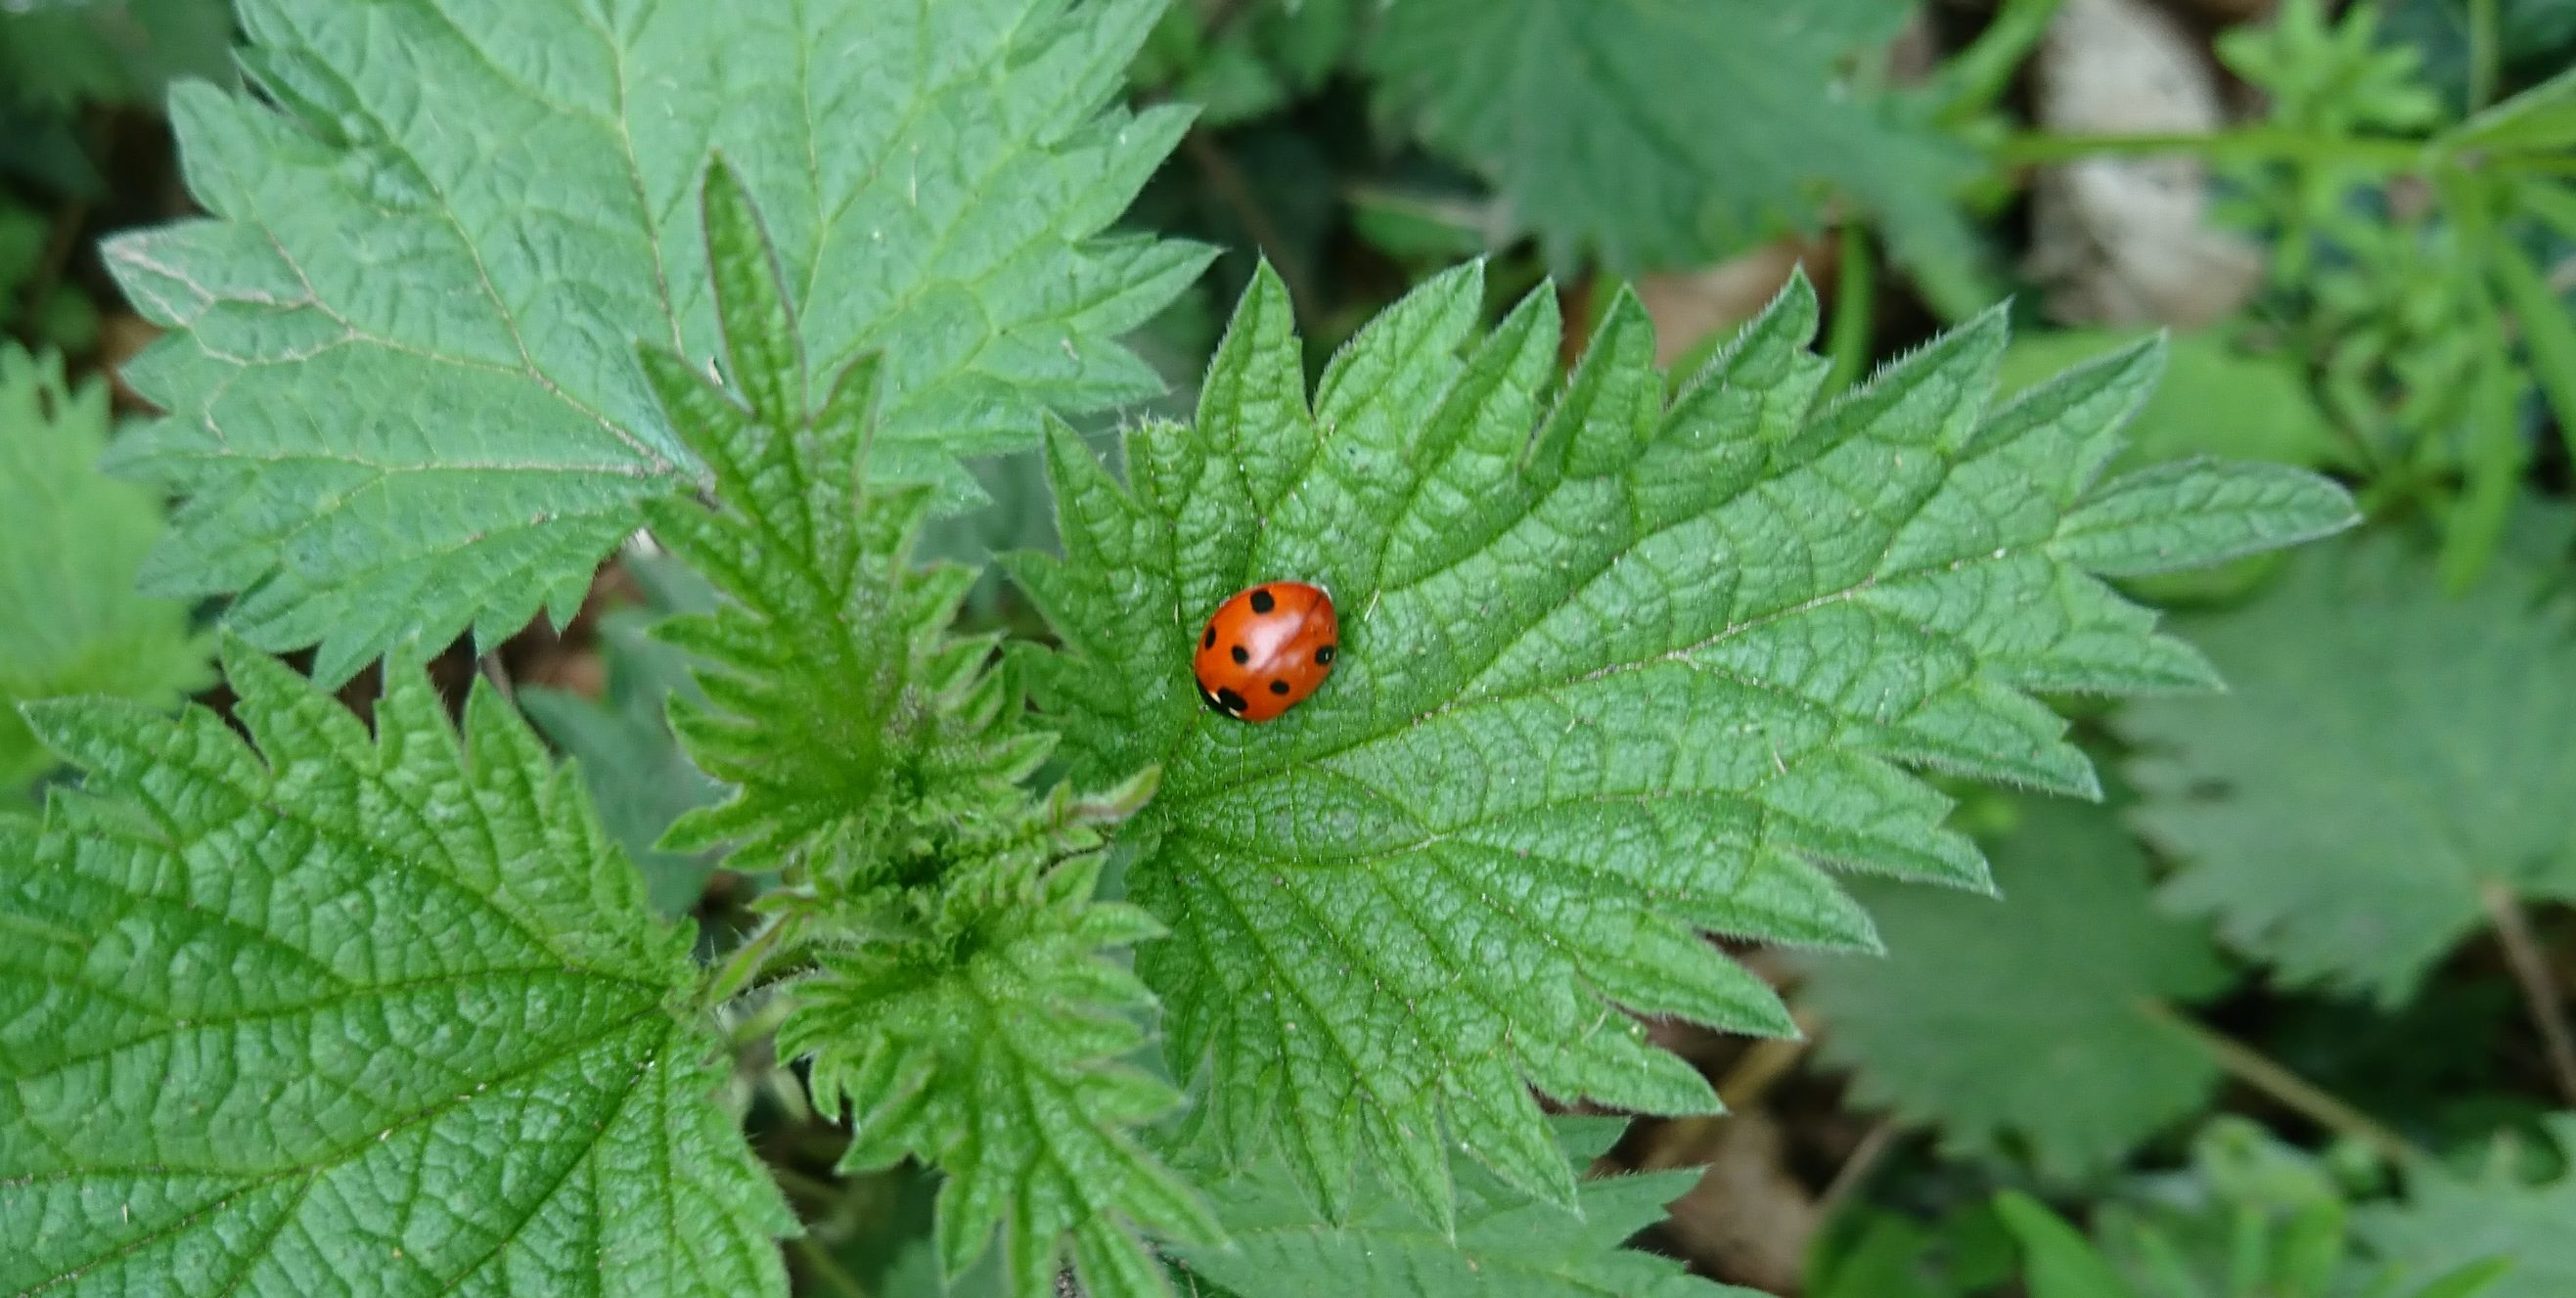 Ladybird on nettles at Moss Wood Caravan Park